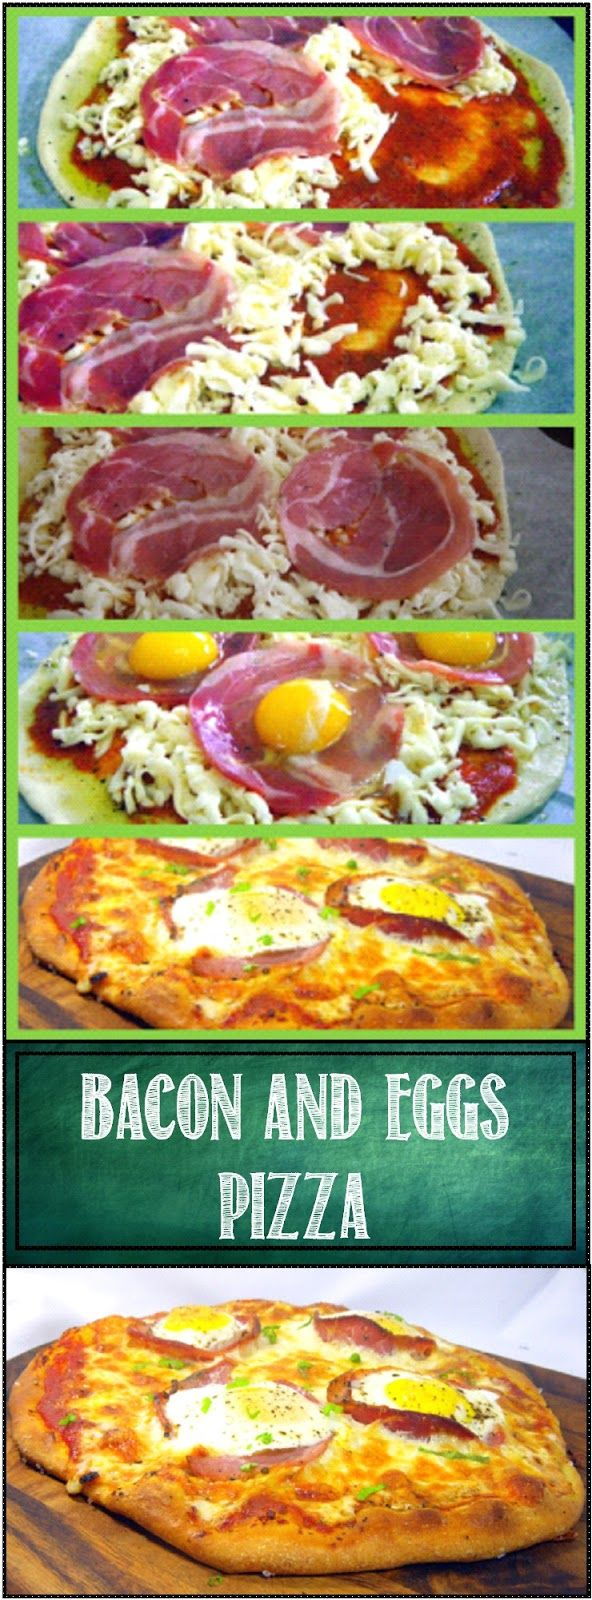 """Bacon and Egg Pizza (Uova e pancetta Pizza)... A classic Italian dish. """"Baked"""" Eggs, baked in a Bacon Cup,surrounded by cheese, sauce and pizza dough. Dramatic, beautiful presentation but more importantly a delicious combination for breakfast, dinner or anytime! One of the most popular pizzas I make. Scratch recipes for dough, sauce and DETAILED PHOTO how to INSTRUCTIONS"""